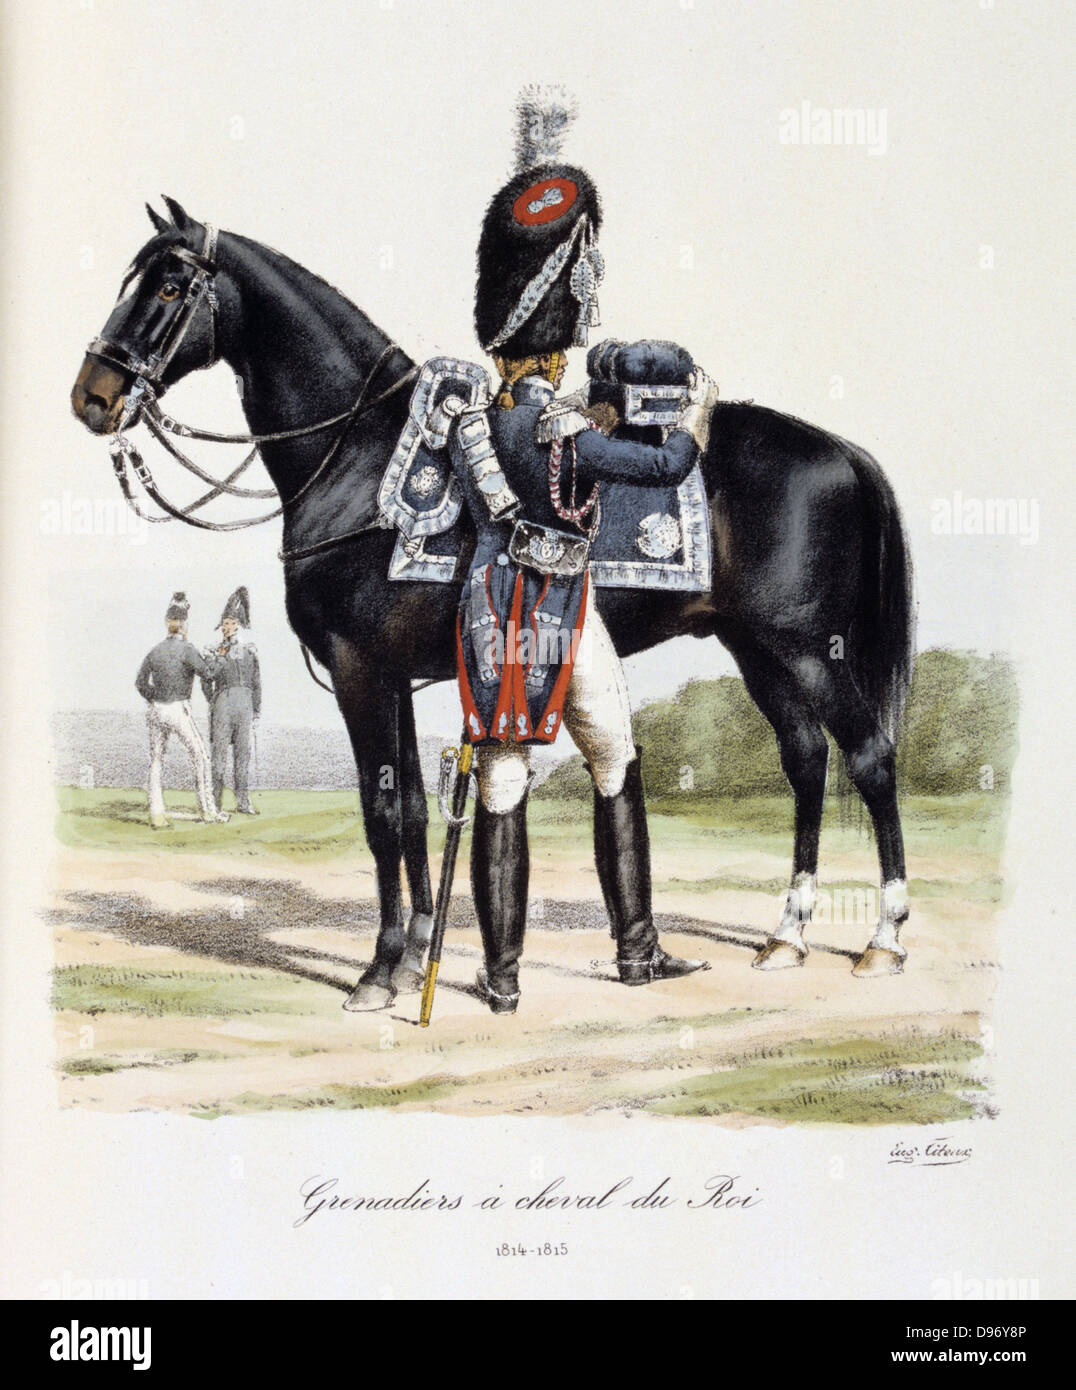 Royal Mounted Black Grenadier, 1814-1815. From 'Histoire de la maison militaire du Roi de 1814 a 1830' by Eugene Stock Photo